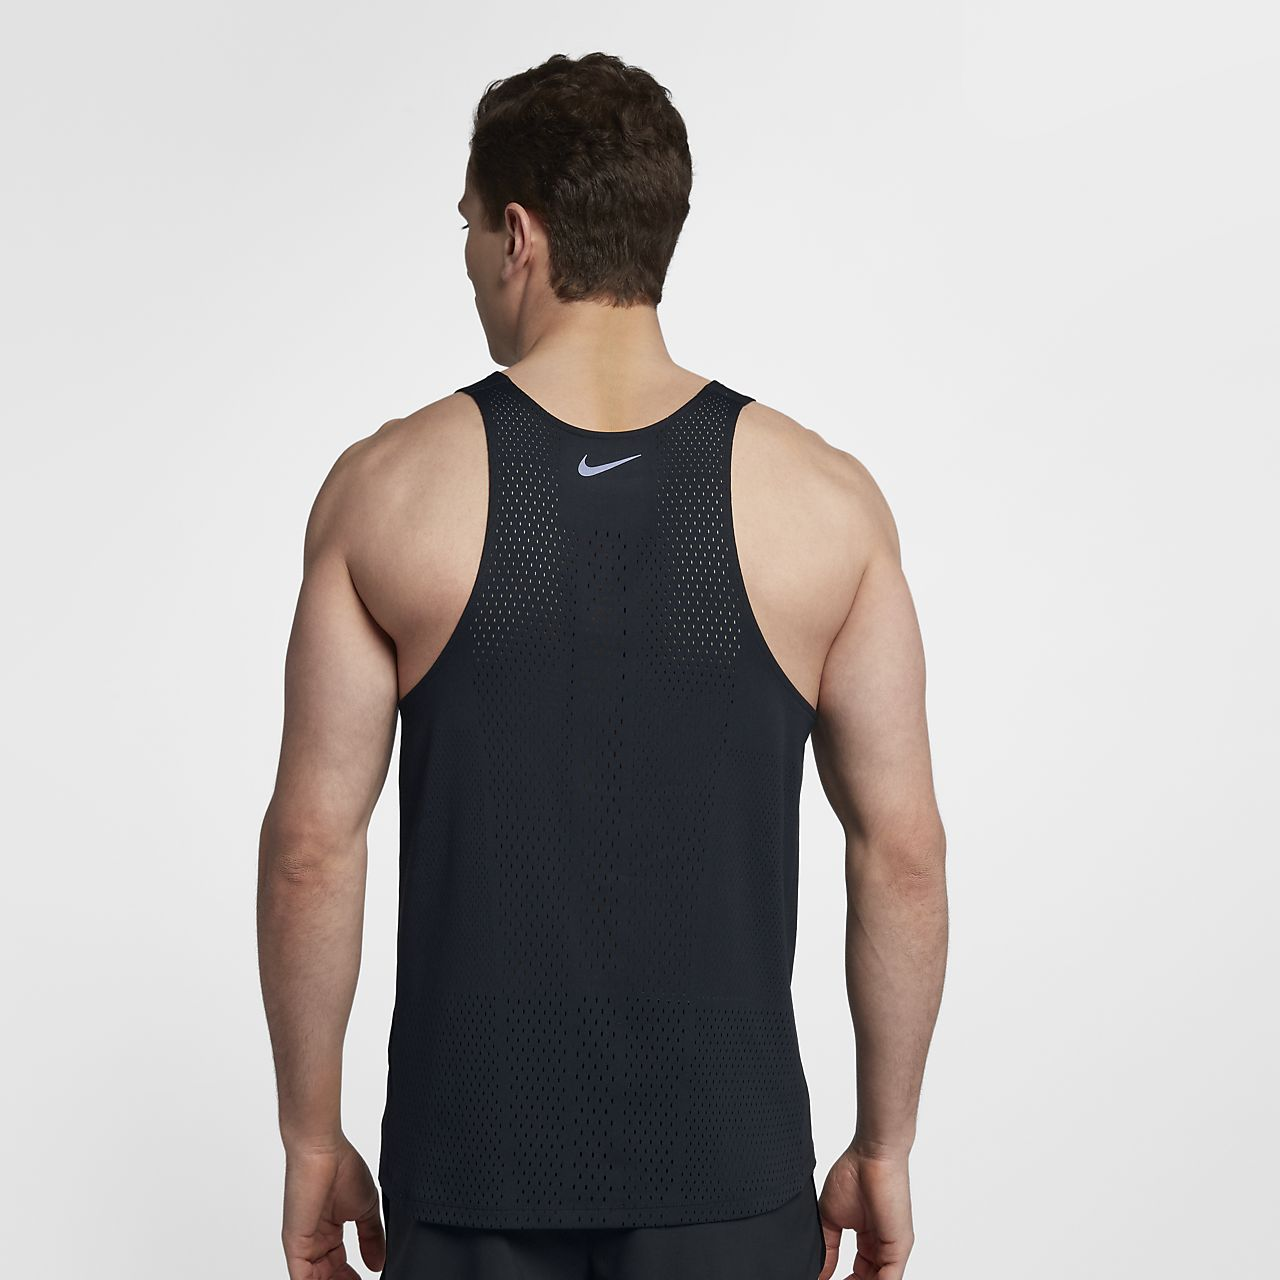 Nike AeroSwift Men's Running Tank